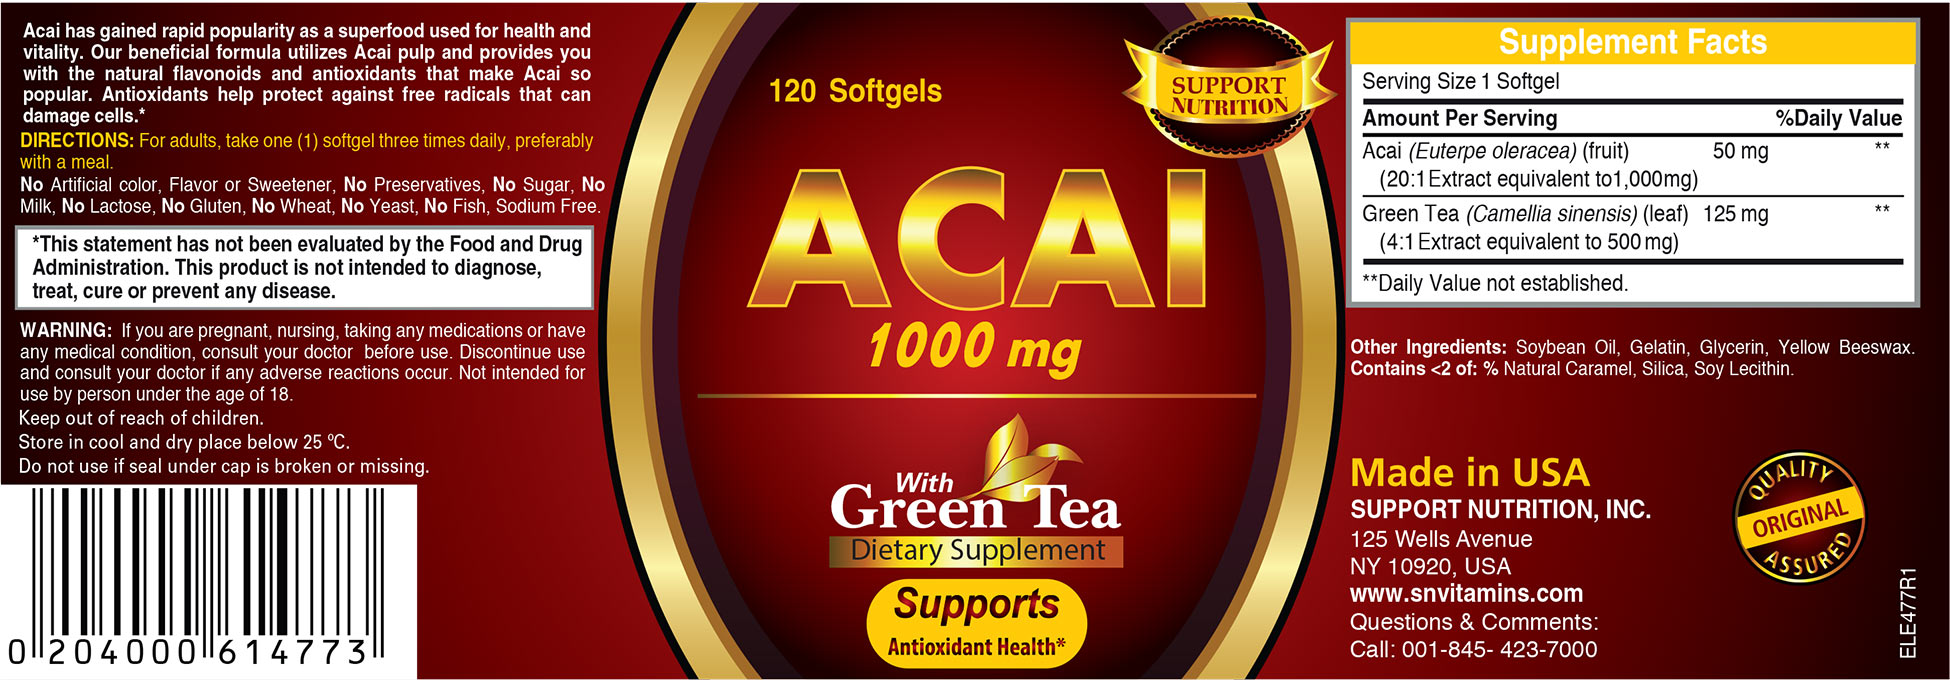 Acai 1000mg Green Tea Dietary Supplement